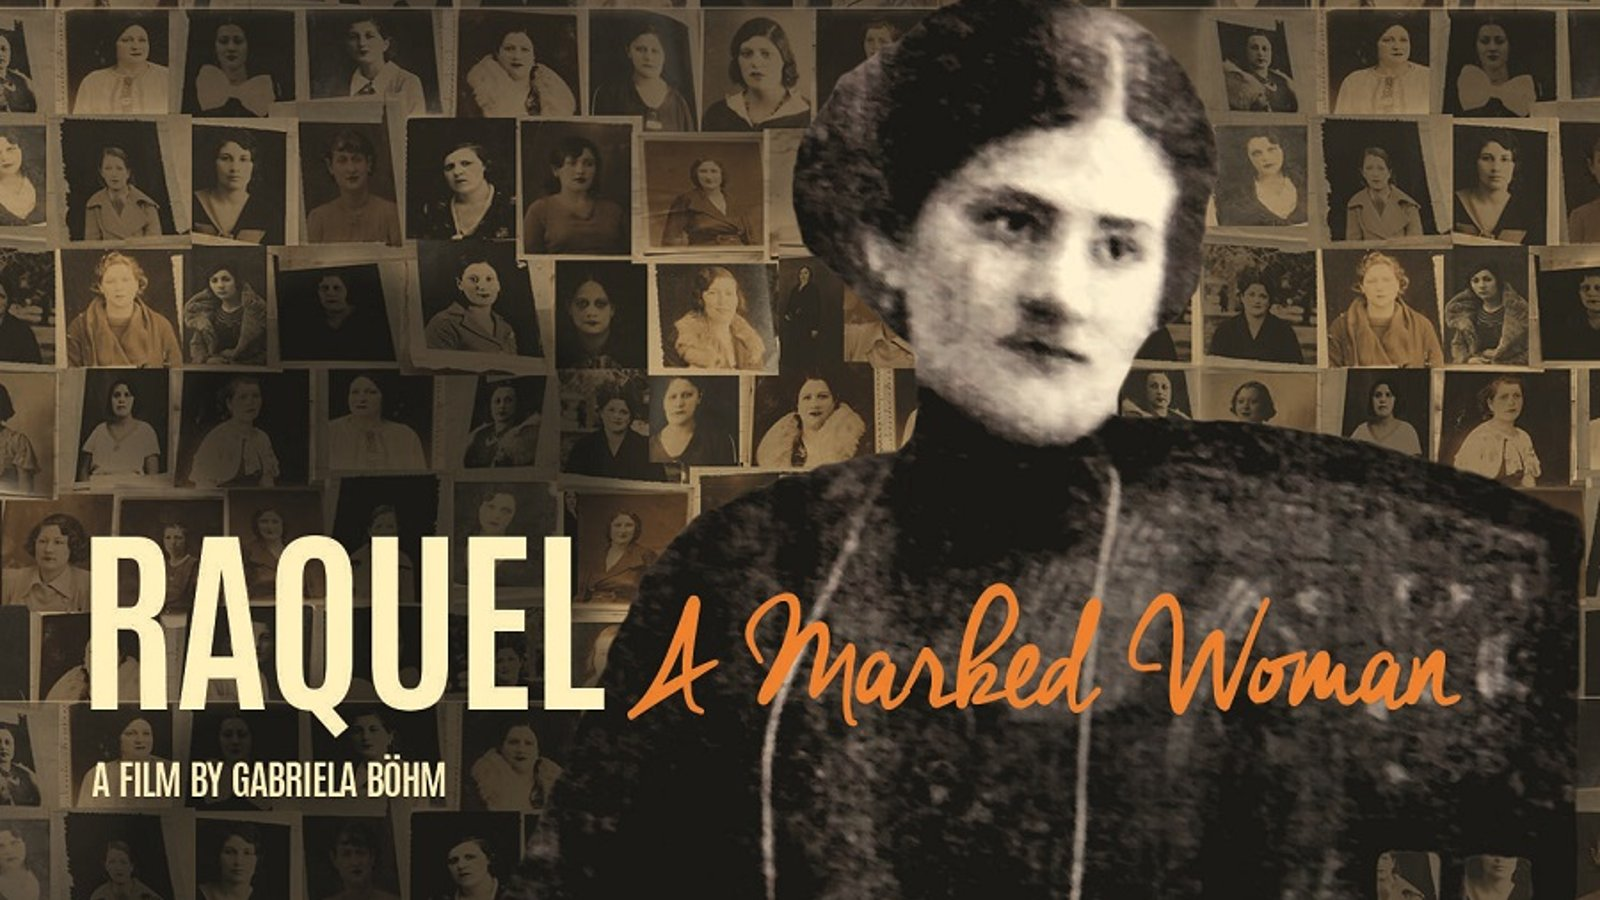 Raquel - A Marked Woman